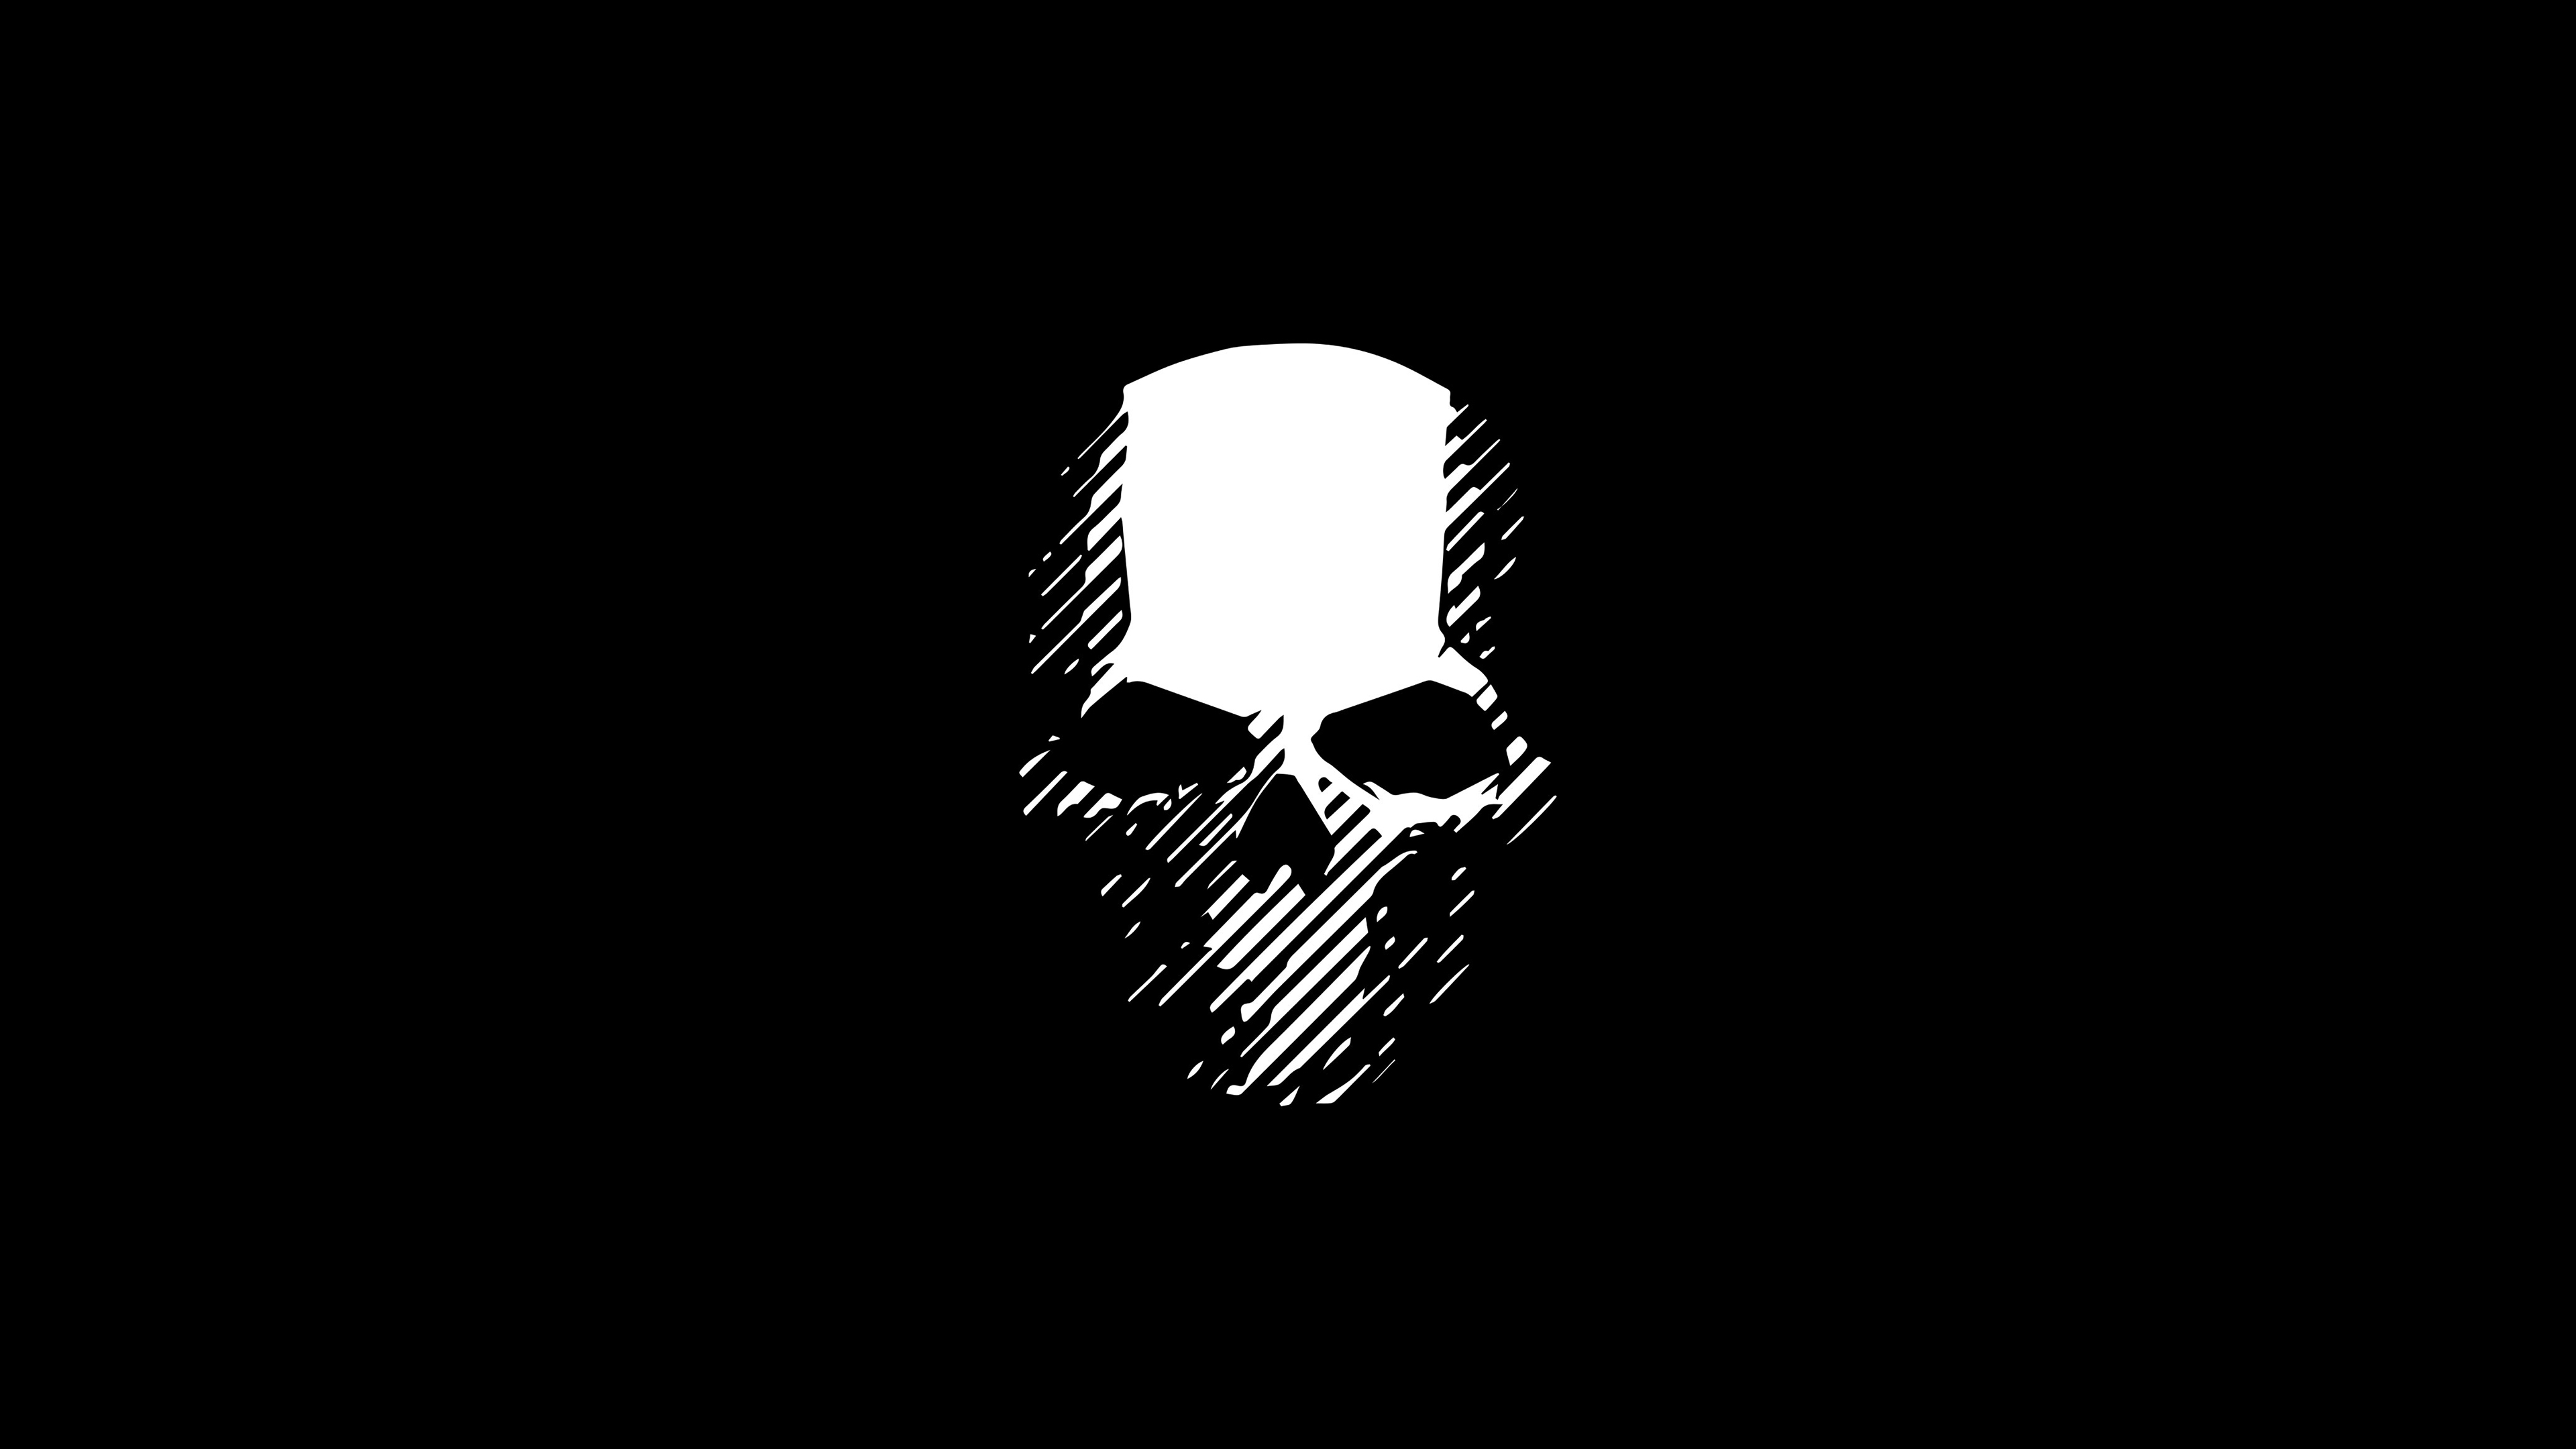 Ghost Recon Skull Wallpaper Hd Games 4k Wallpapers Images